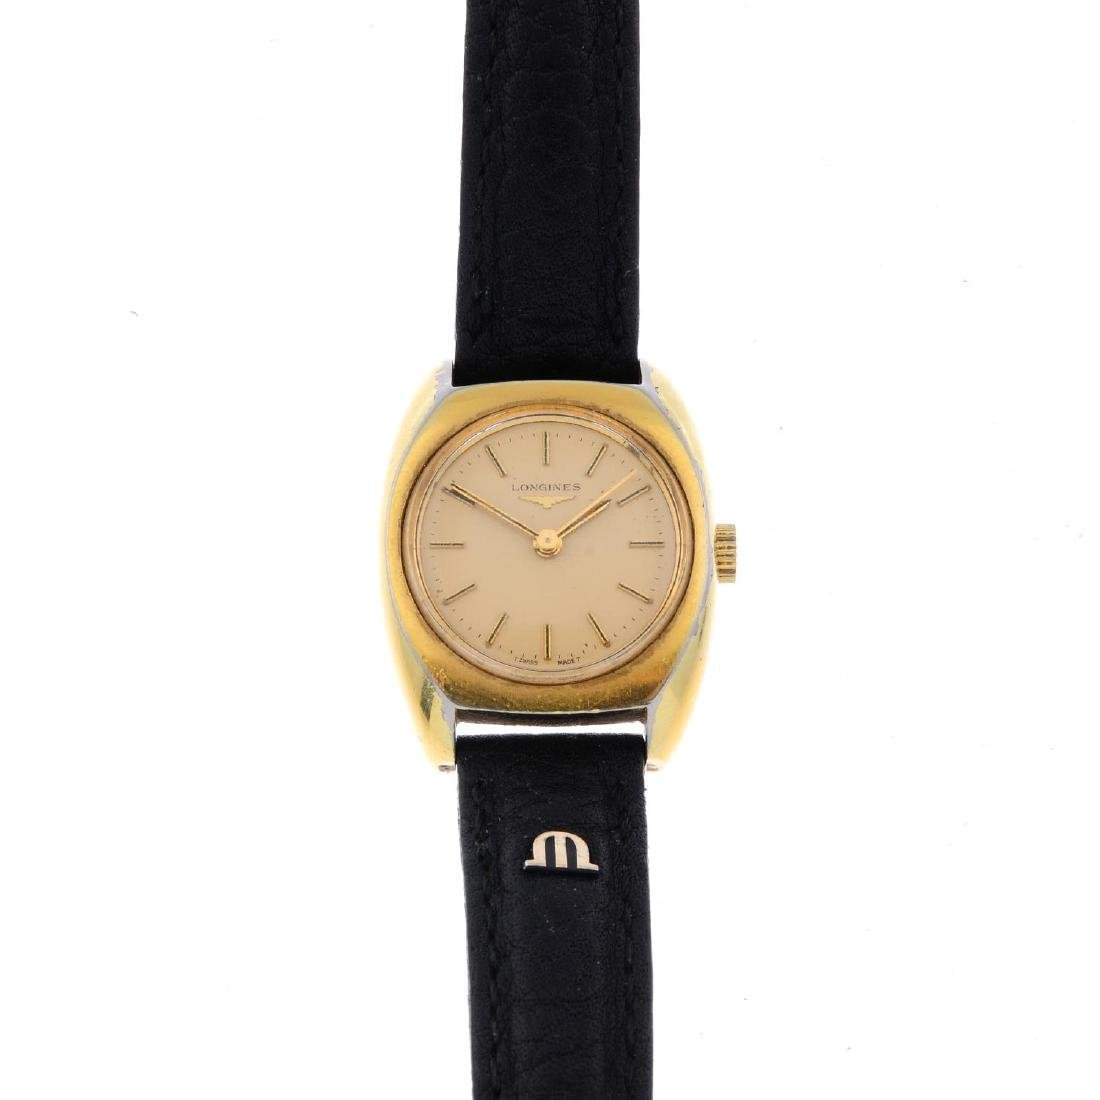 LONGINES - a lady's wrist watch. Gold plated case with